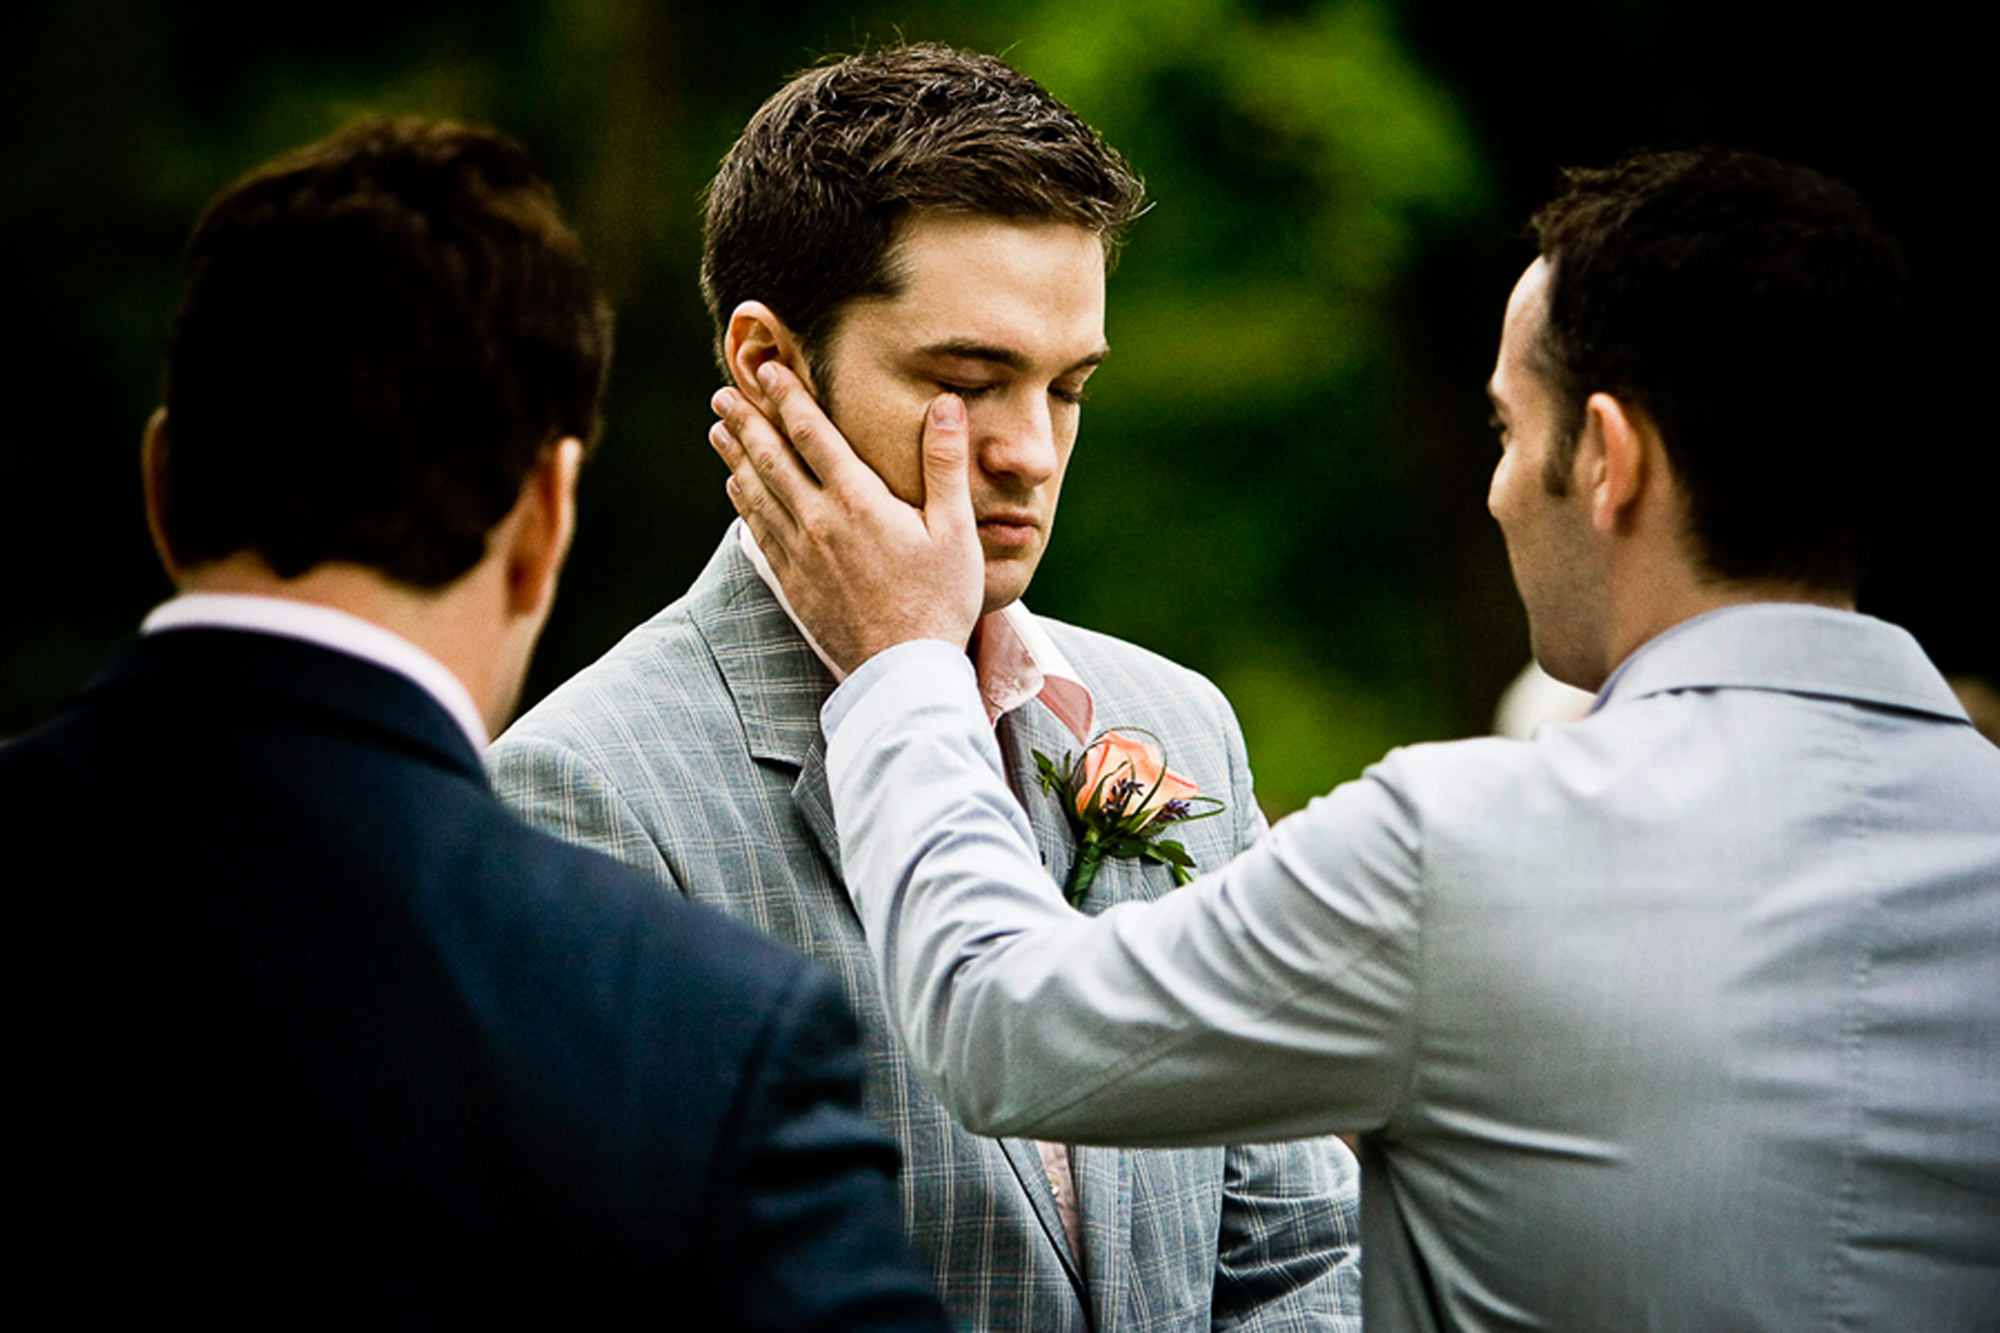 Groom wipes away groom's tears during ceremony photo by Jag Studios